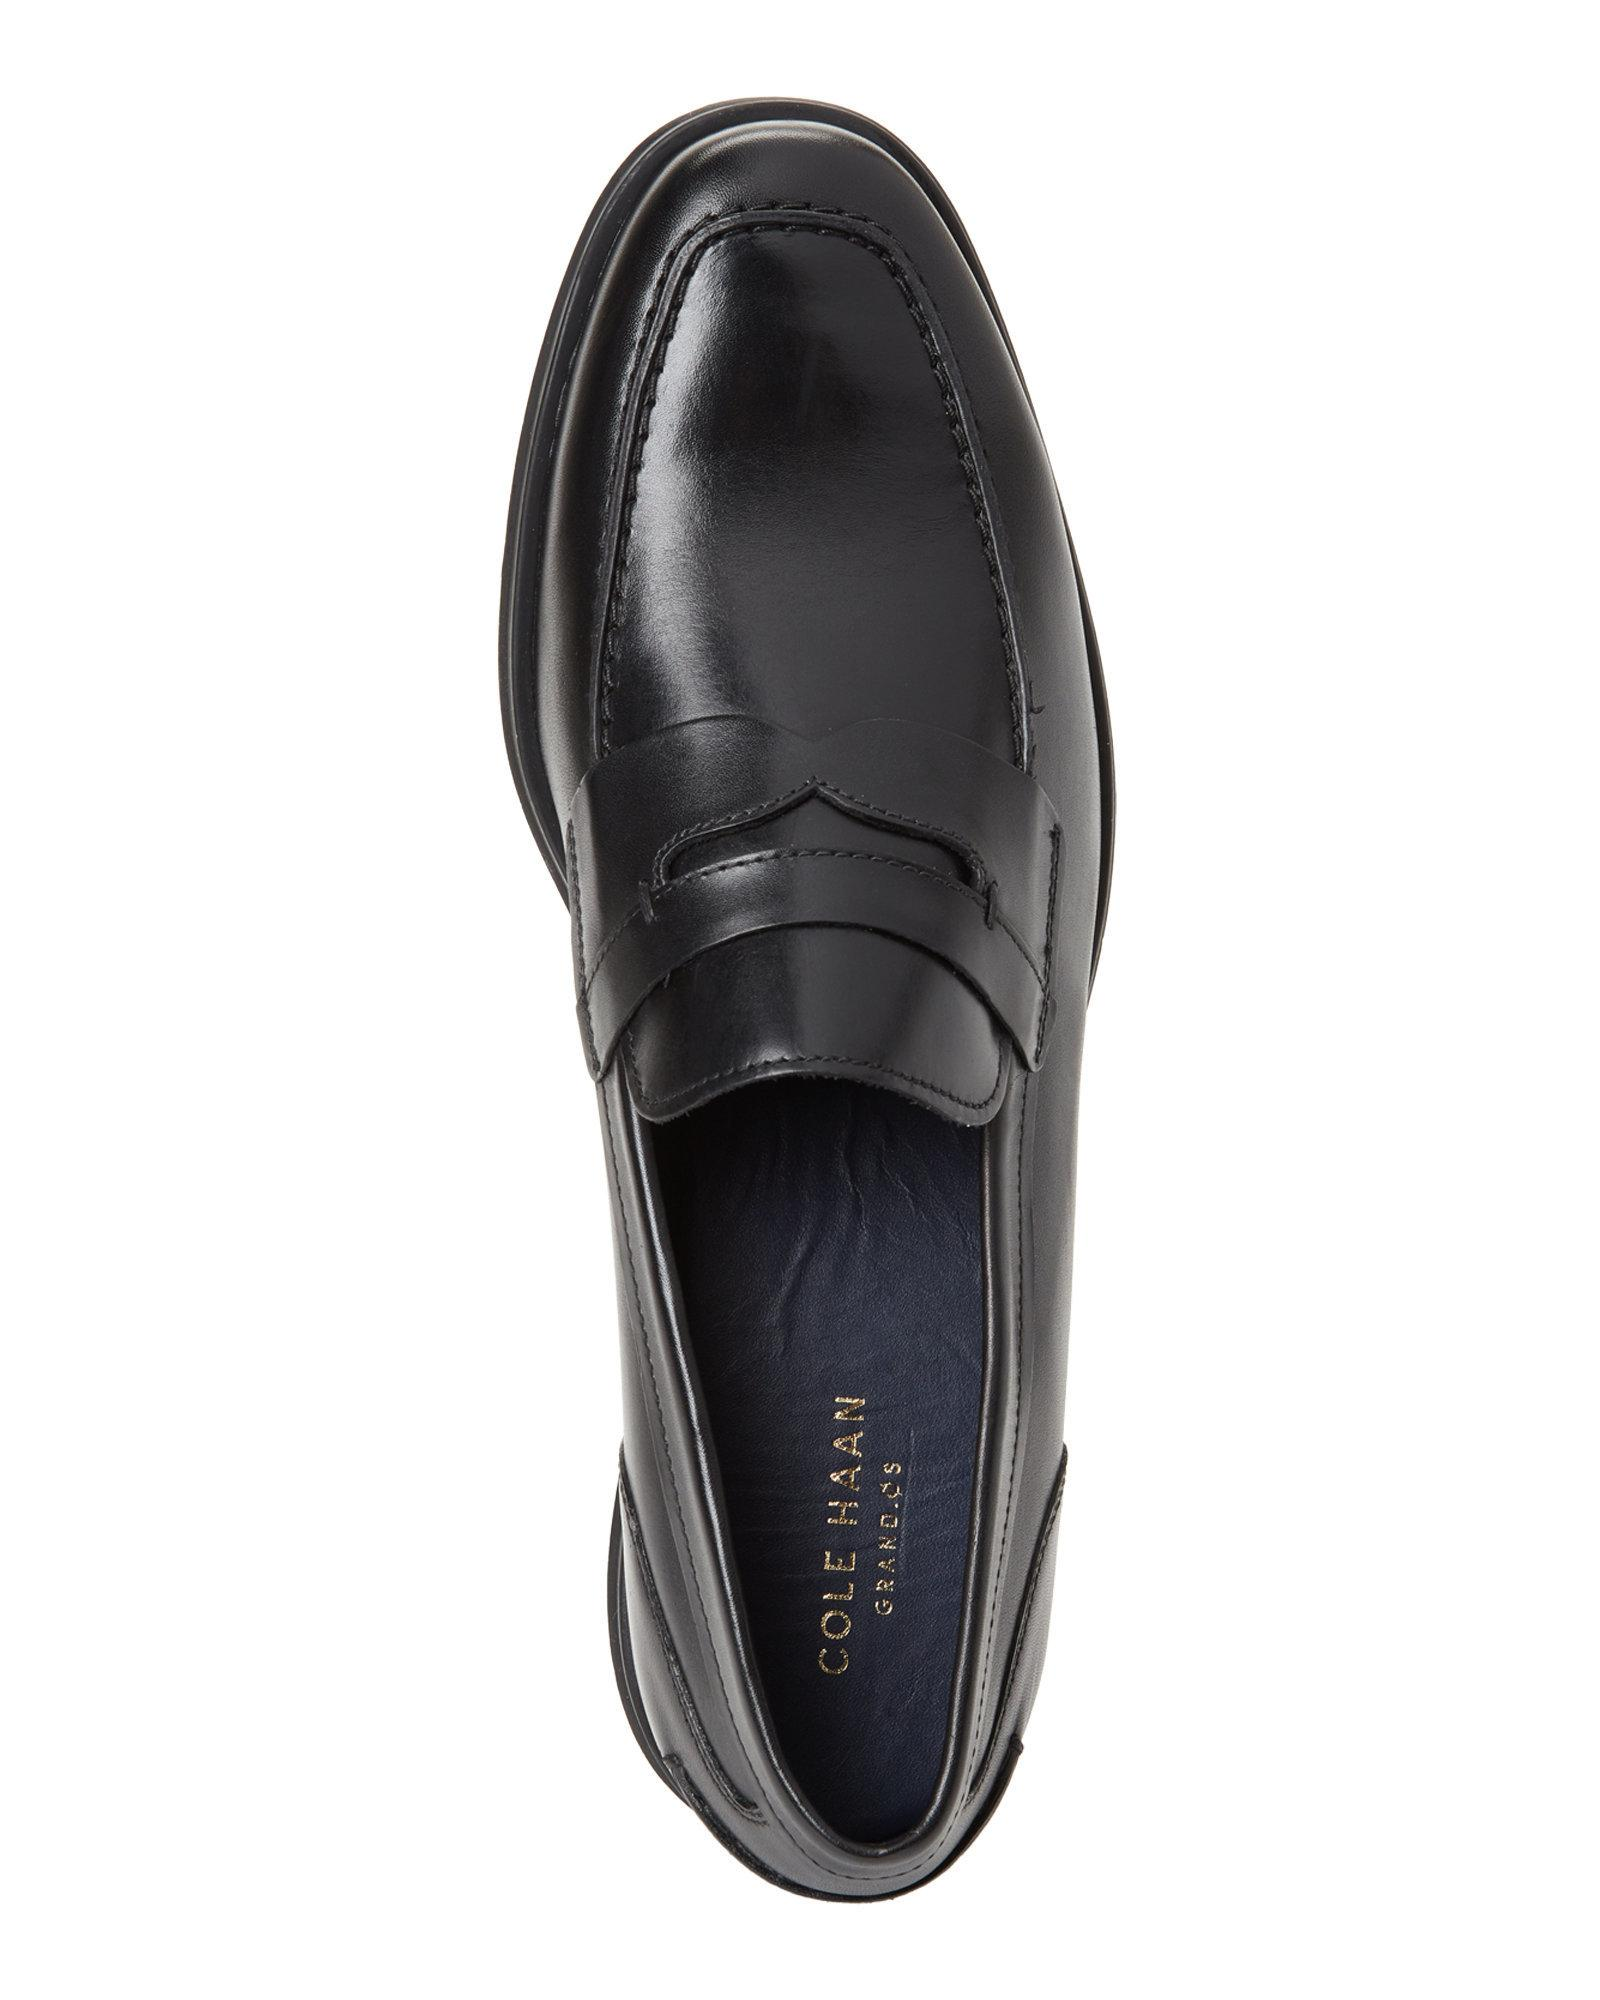 Cole Haan Leather Black Fleming Penny Loafers for Men - Lyst